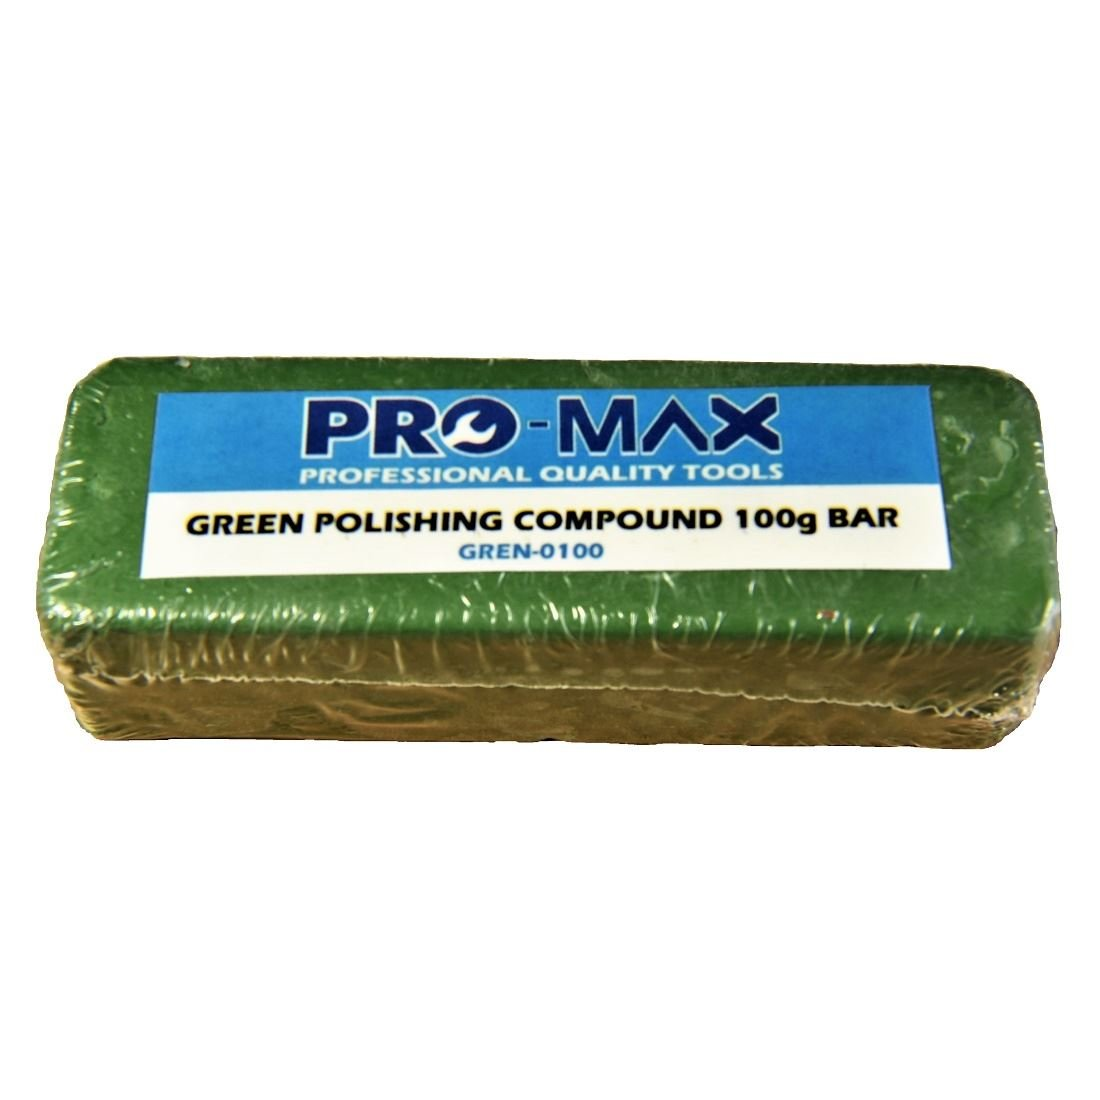 Pro-Max 100g Bar Green Steel & Stainless Steel Metal Polishing Buffing Compound Pro-Max Quality Tools & Accessories